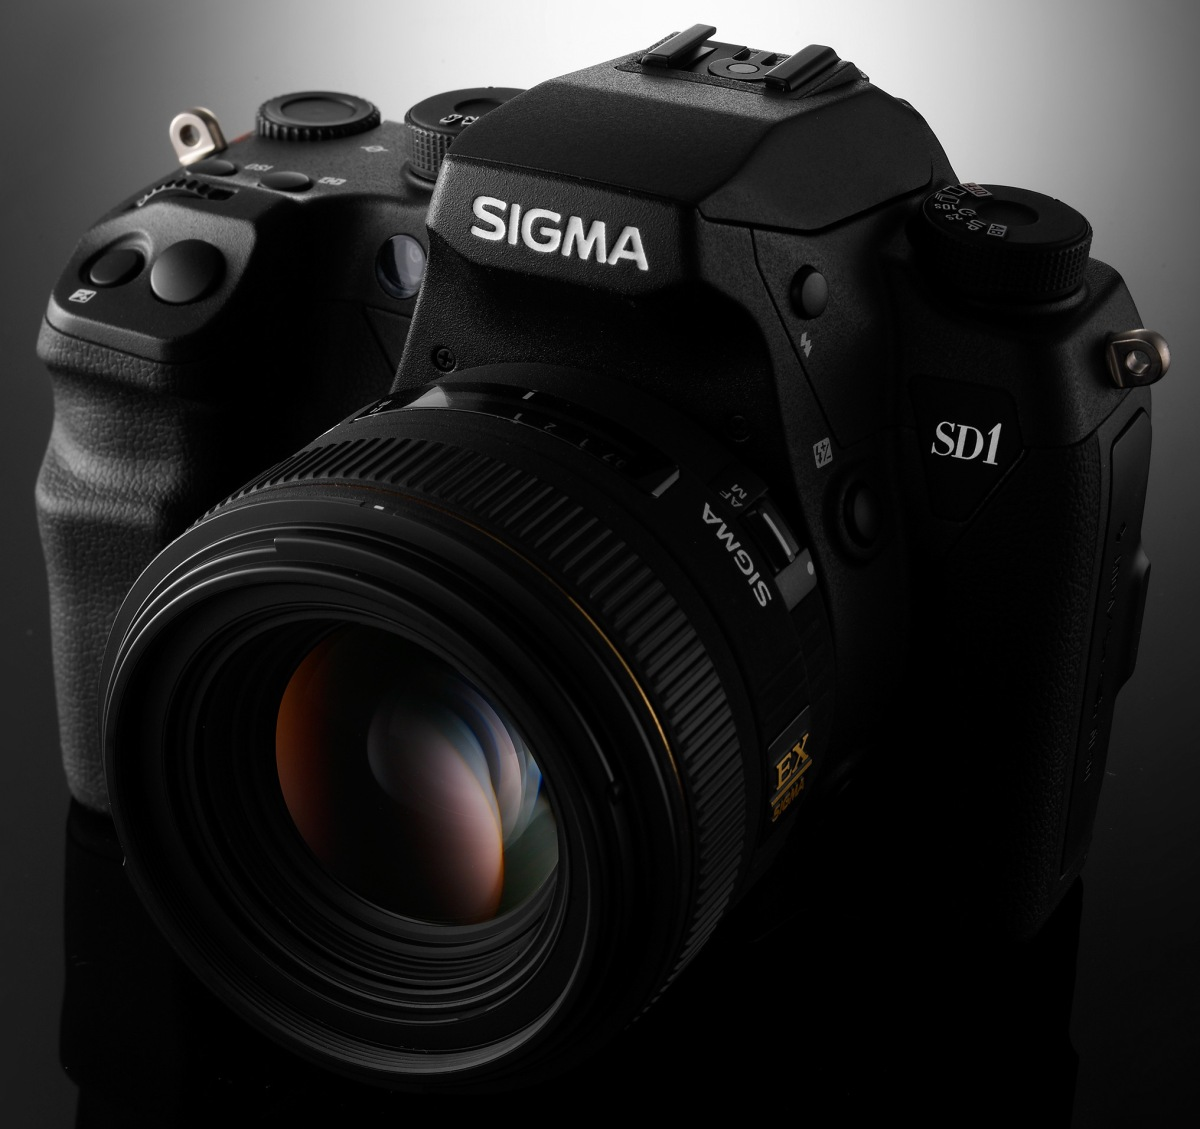 My thoughts on SigmaDSLRs